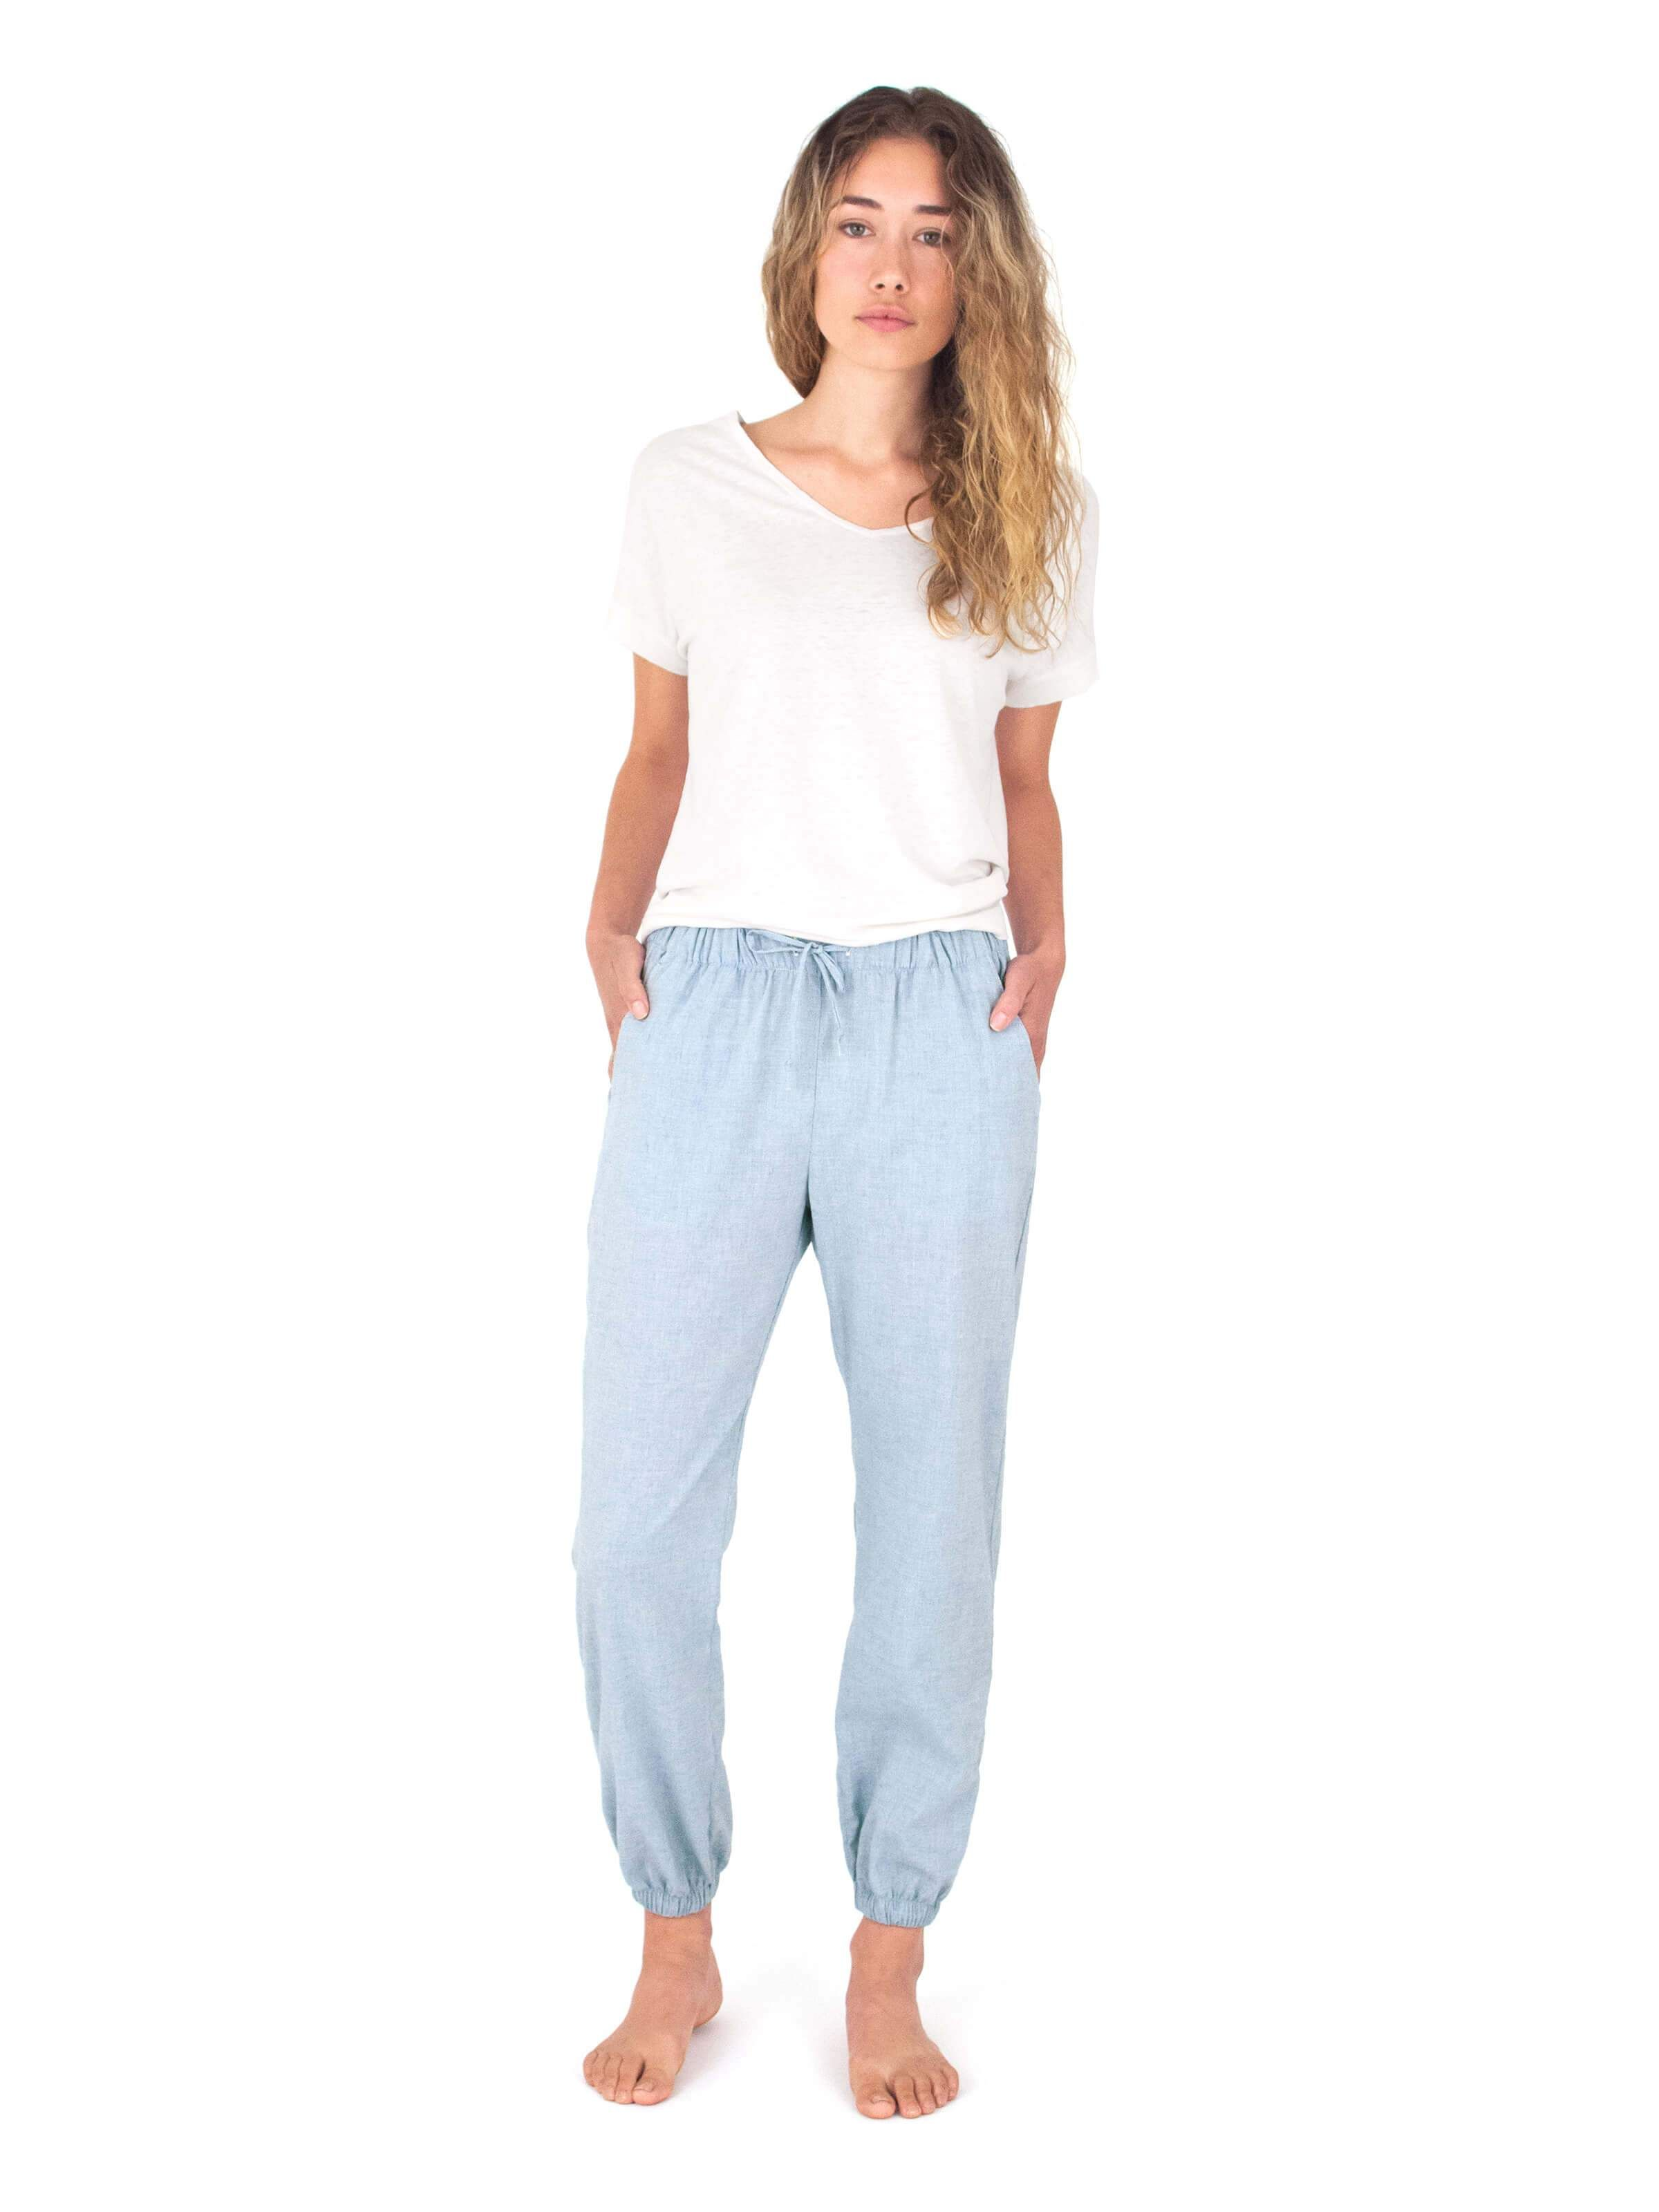 db8723ab75 Somewhere in the perfect middle, our Beach Pant takes the easy of an  everyday casual